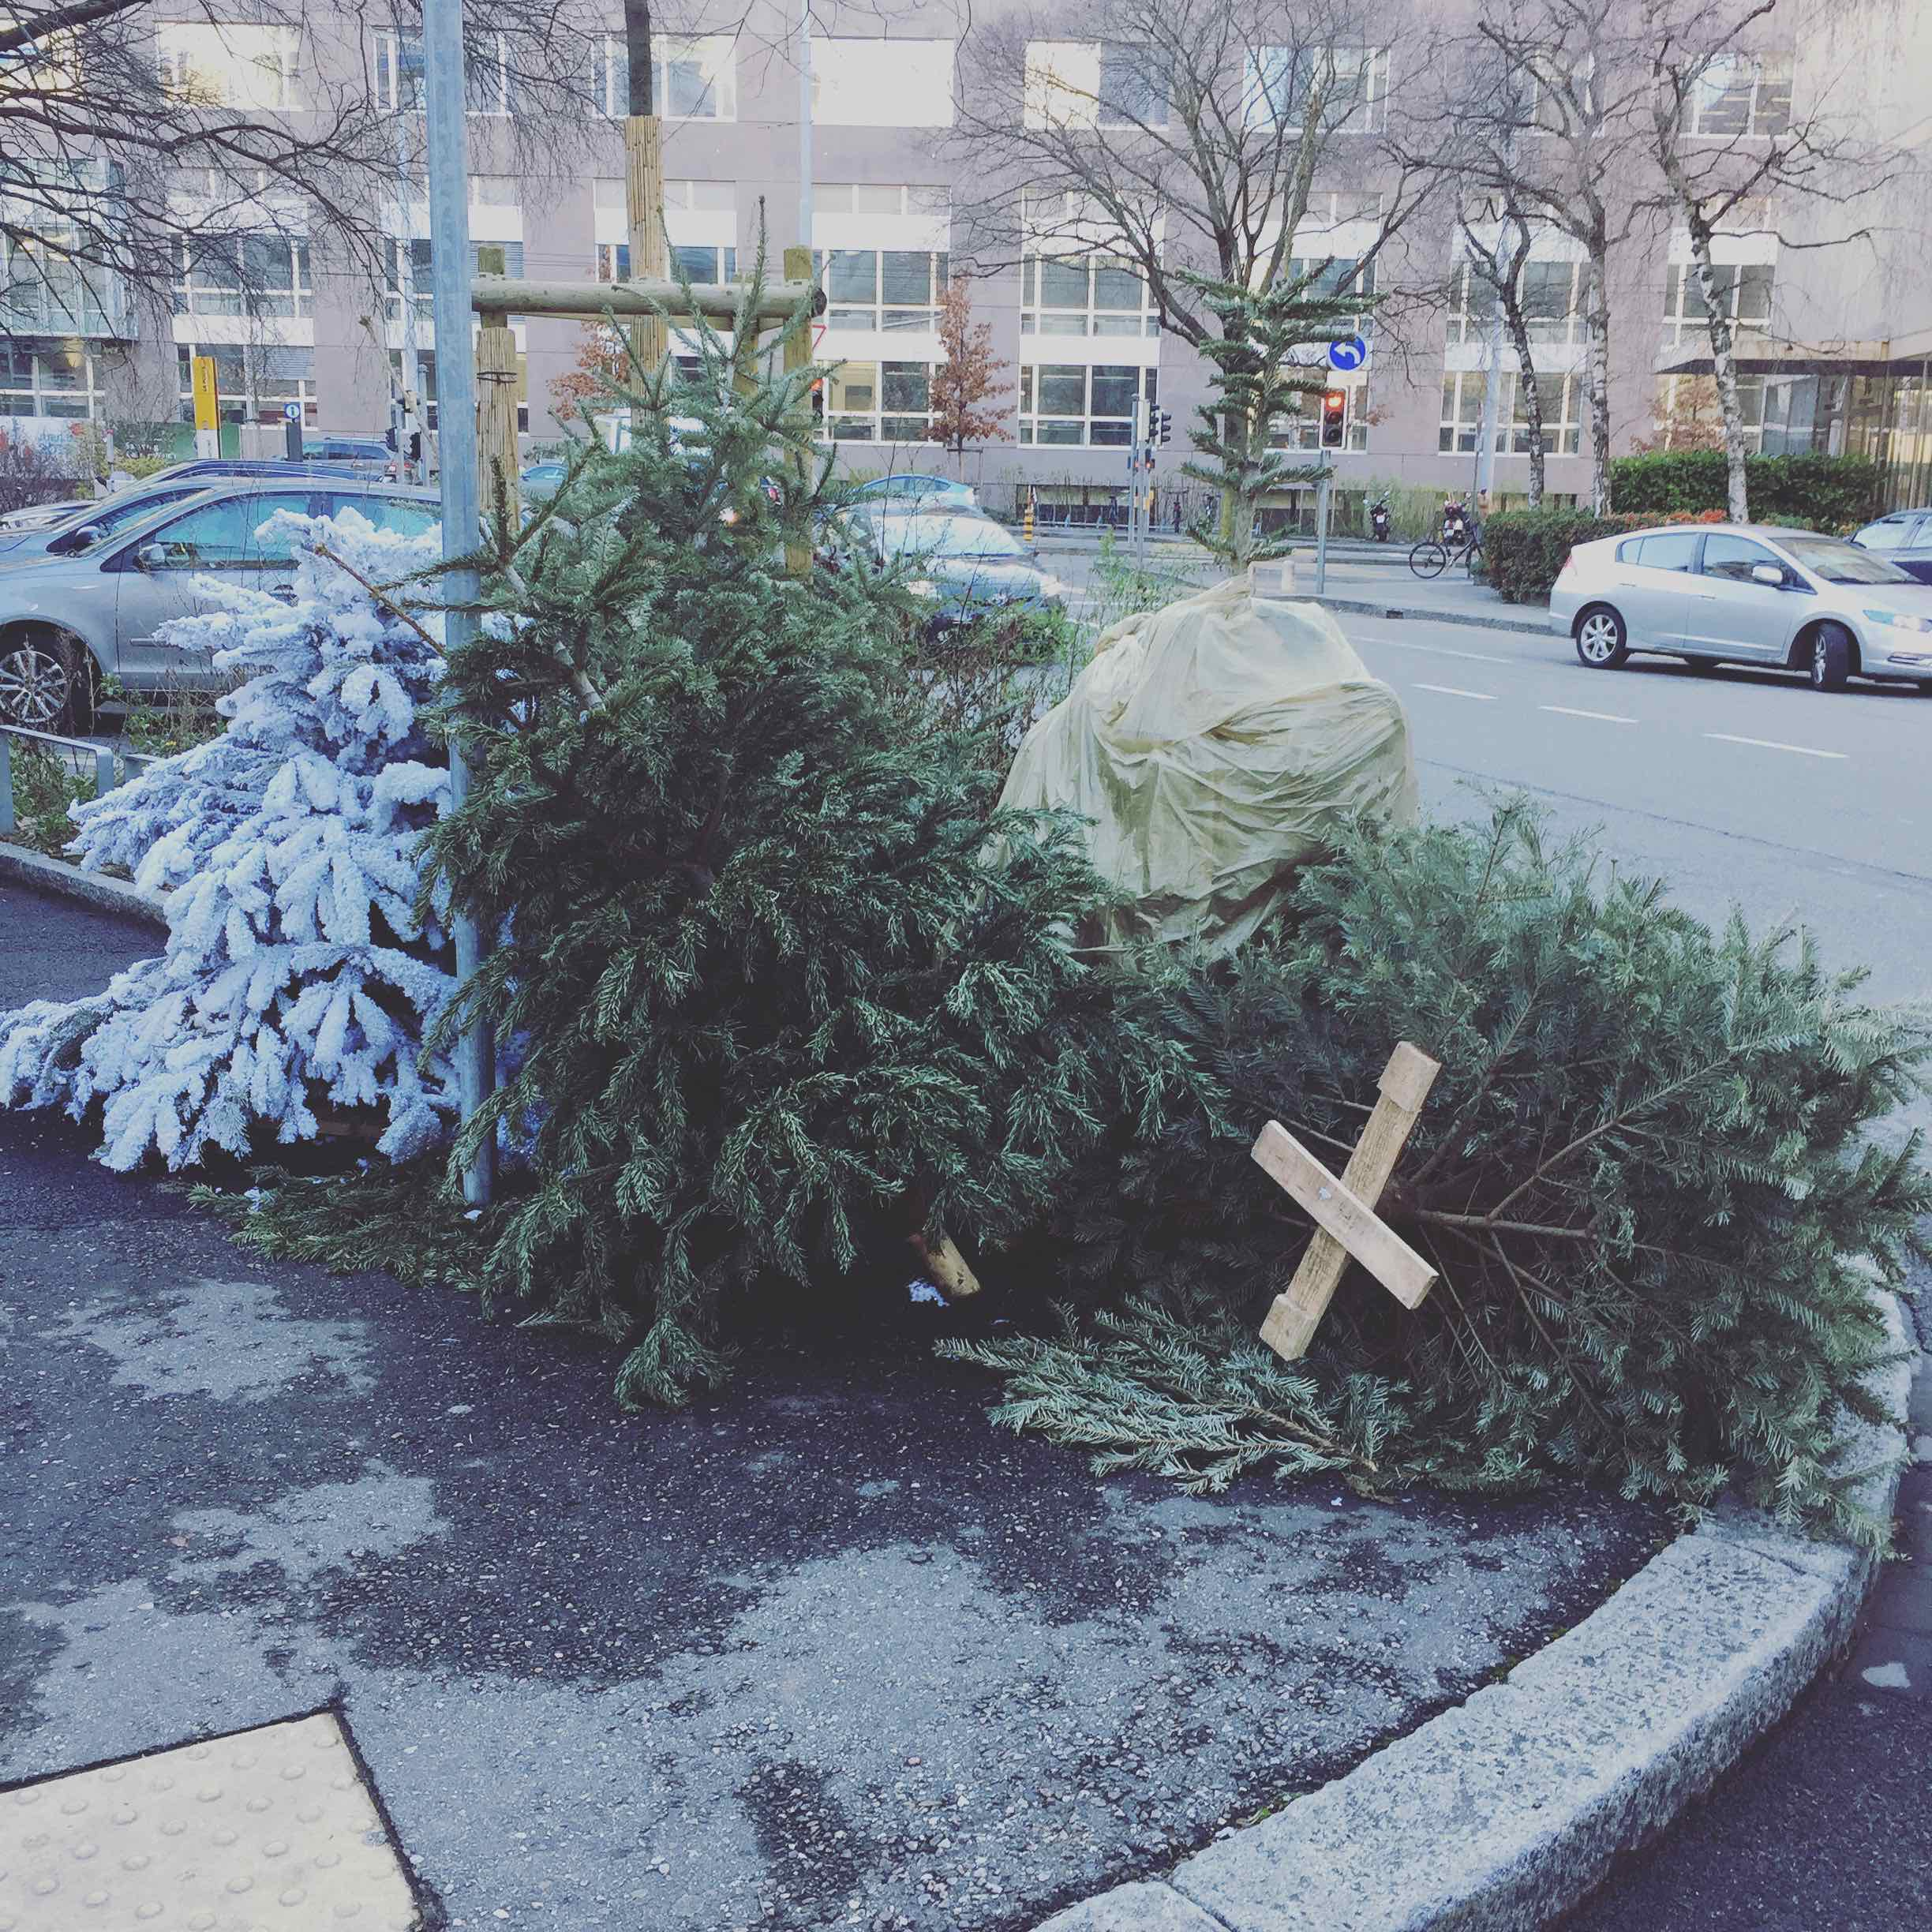 This day was terrifying. Every street was strewed by Xmas Trees. Few got thrown naked when other where covered with grave clothes. One even had suffer from a cryogenic experiment... how far is going humanity?